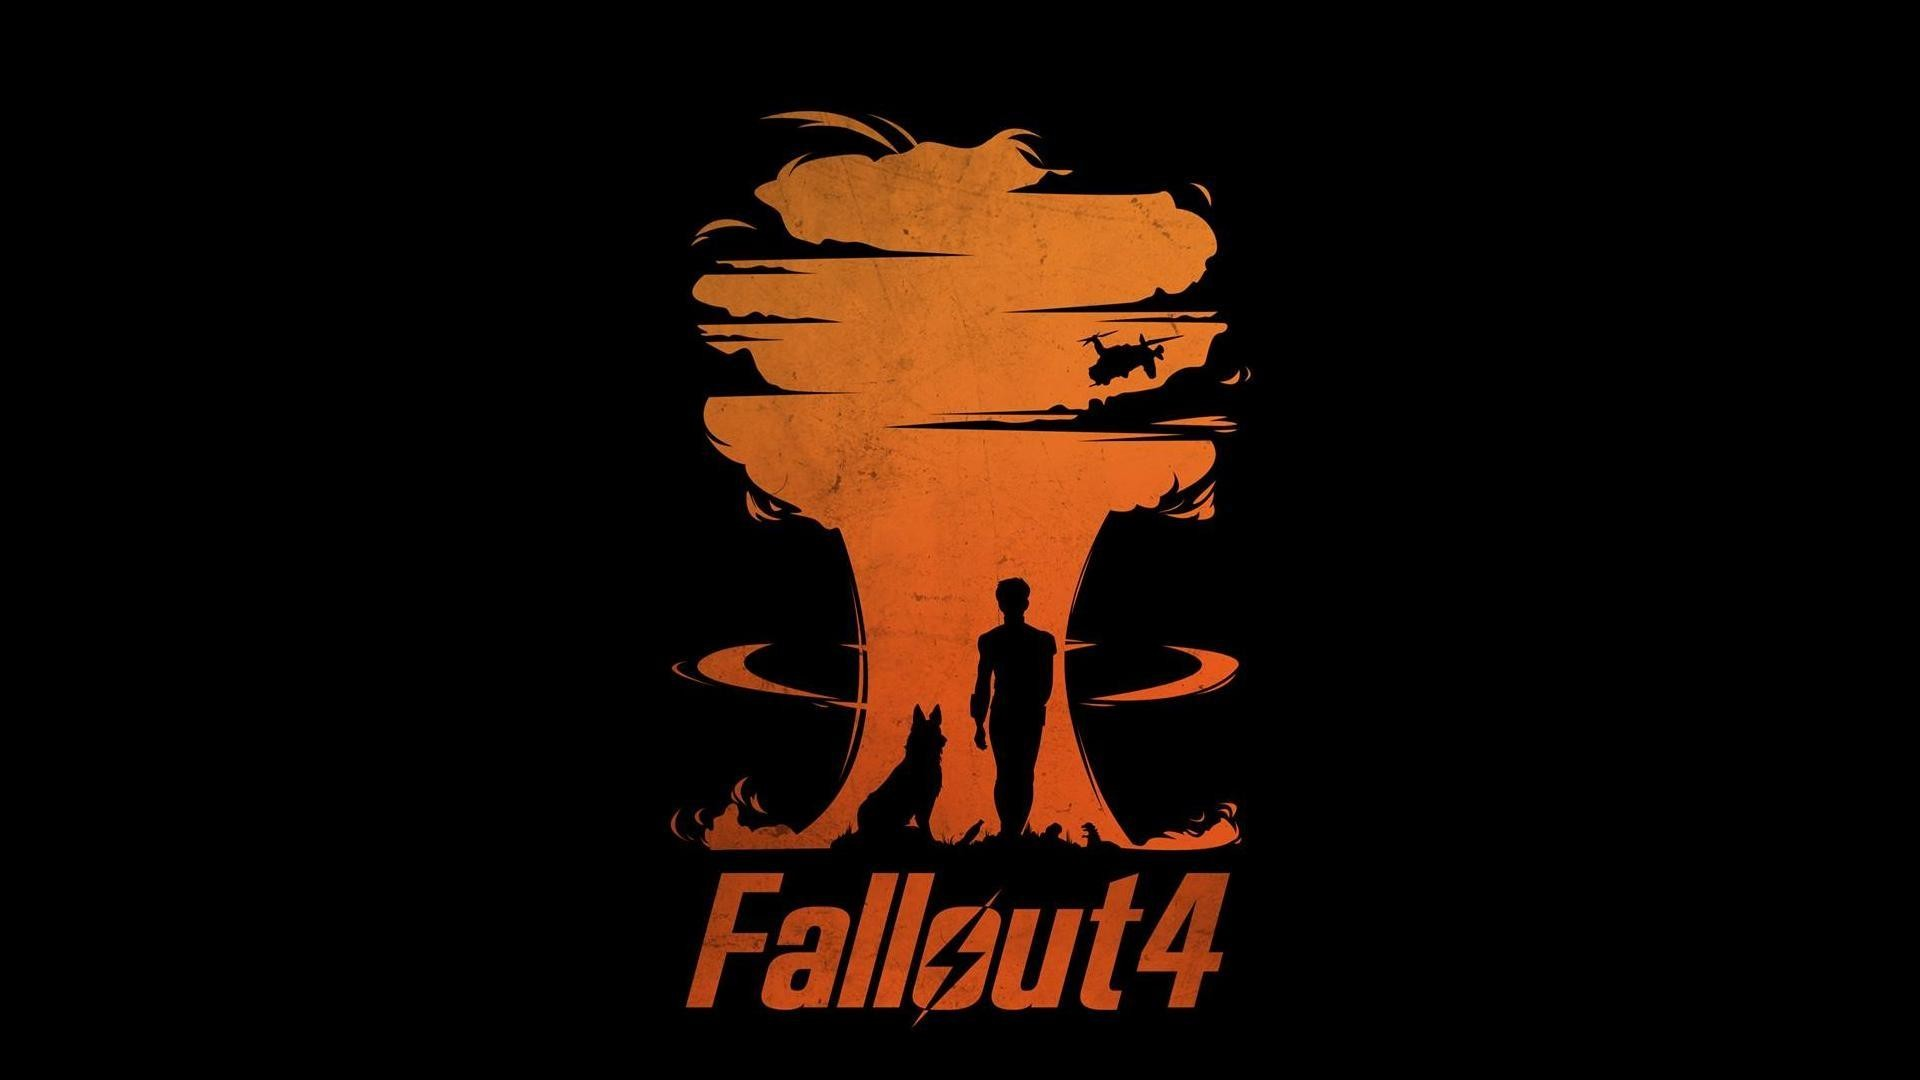 1920x1080 Fallout Please Stand By Wallpaper High Definition